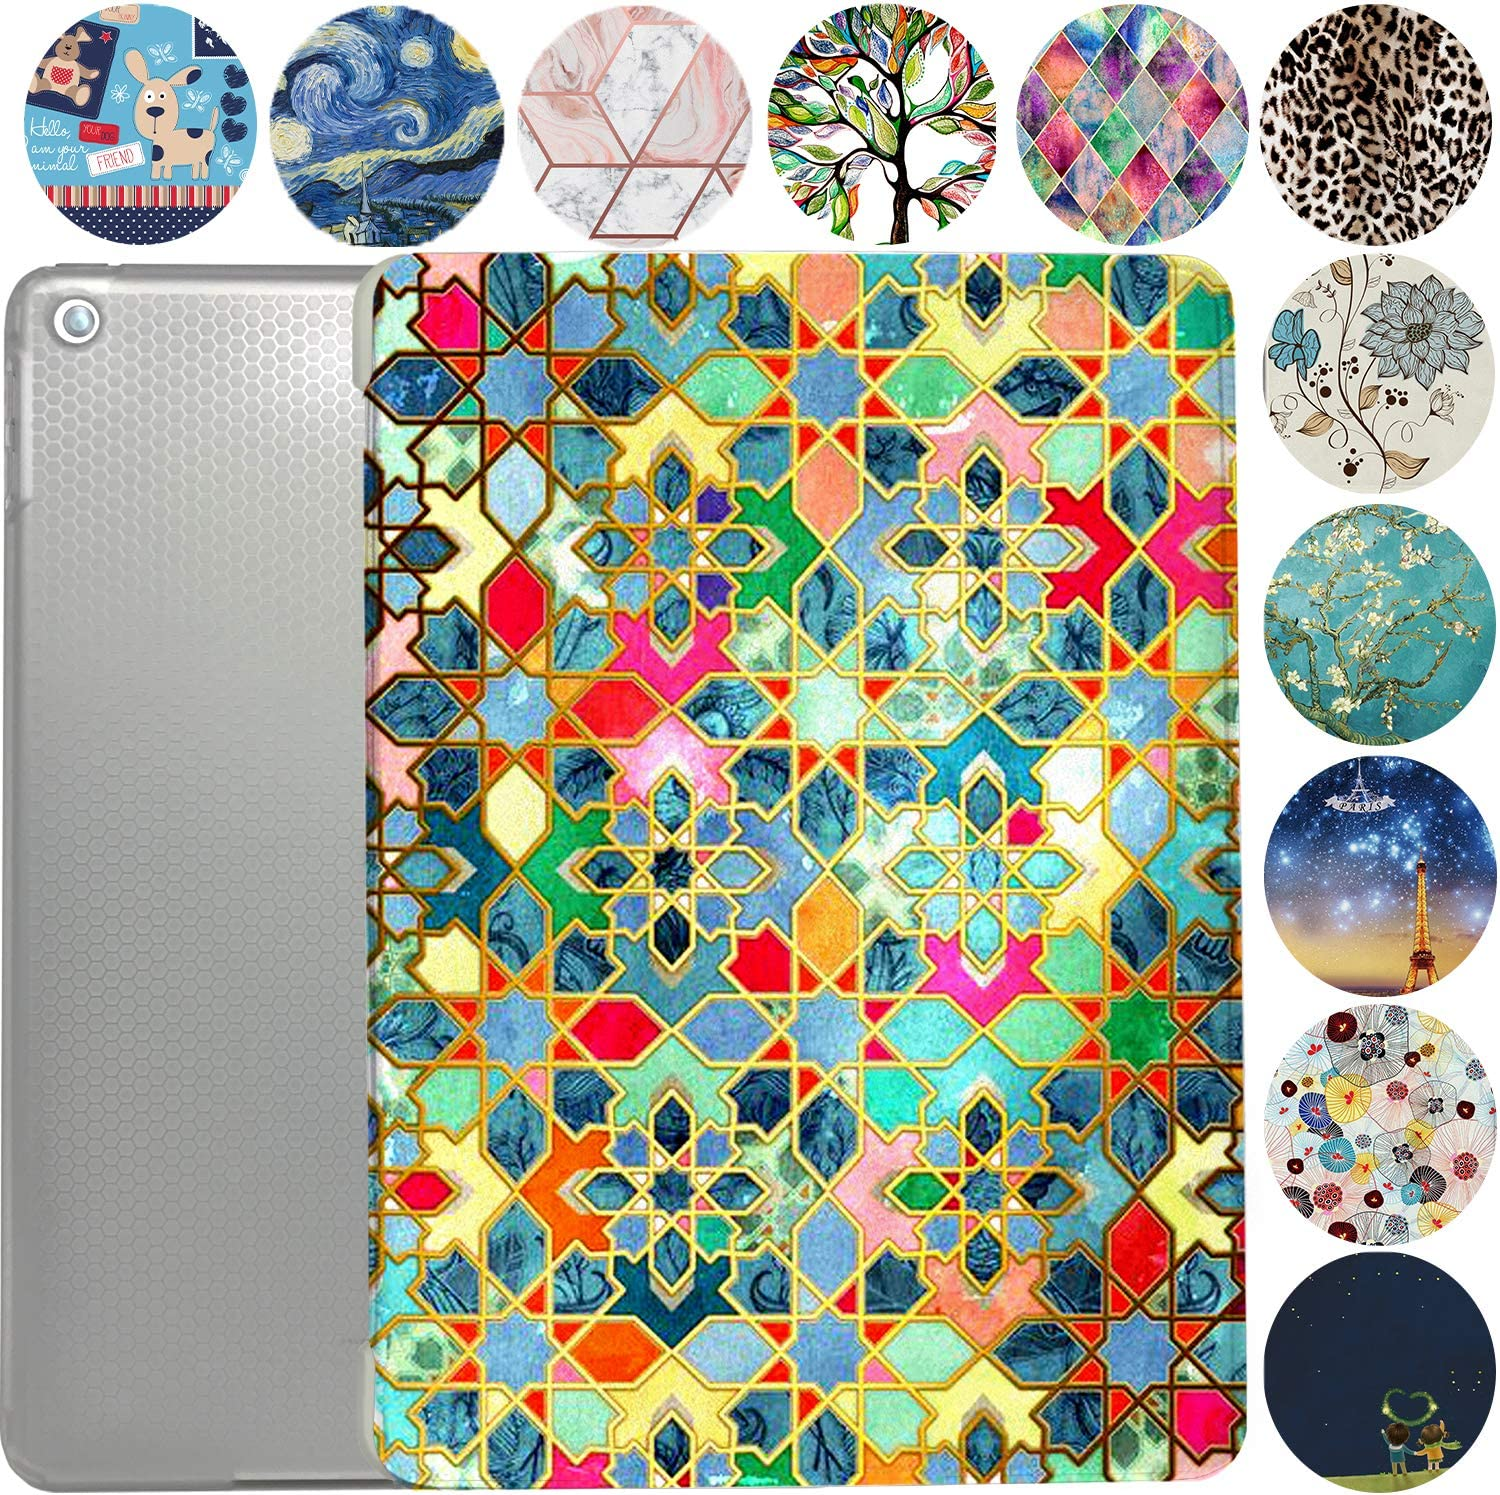 "iPad 10.5 Case 2019 iPad Air 3rd Generation Slim Smart Protective Cover with Soft TPU Honeycomb Clear Back & Viewing/Typing Stand for iPad 10.5"" Air 3 Gen Auto Sleep/Wake Printed- Damask"